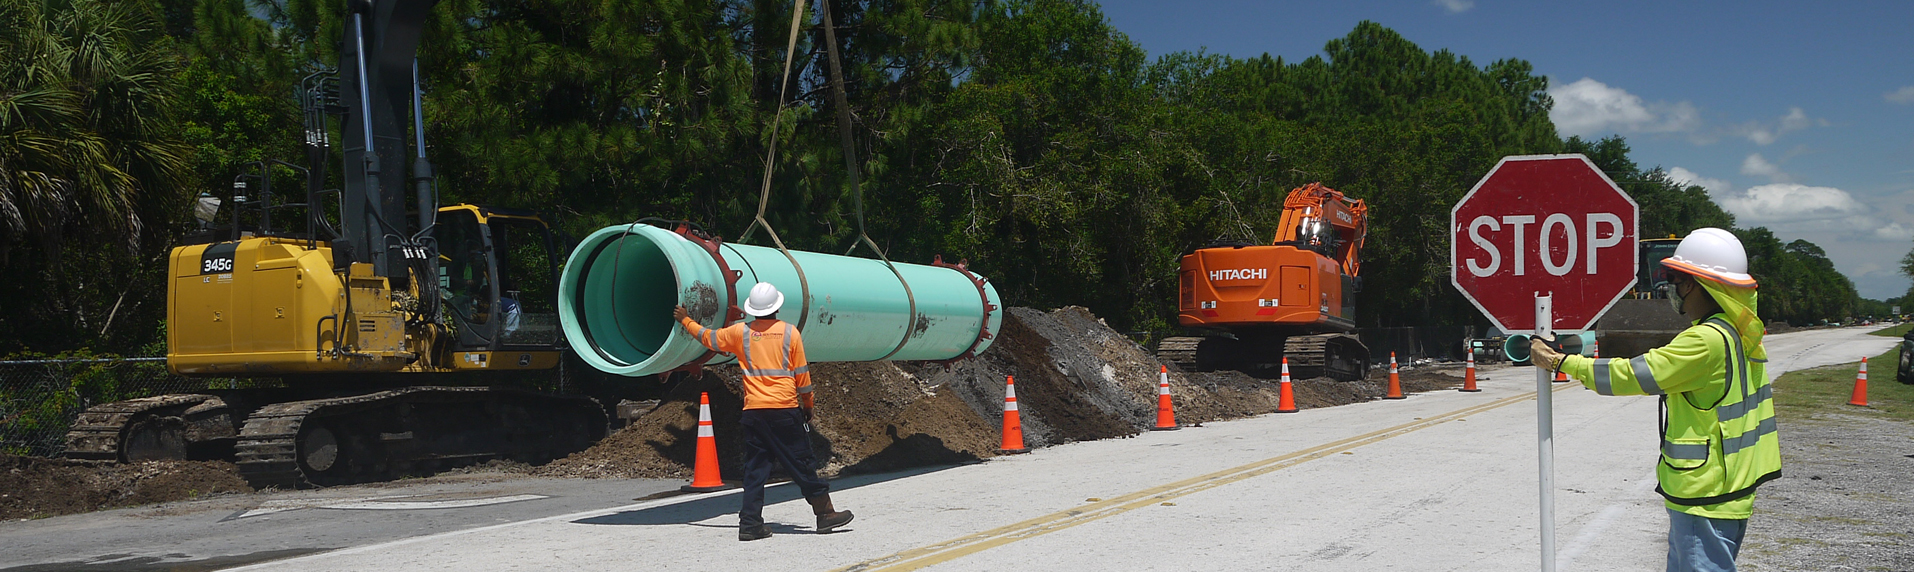 A flagger stops traffic while a pipe is lowered into the trench.